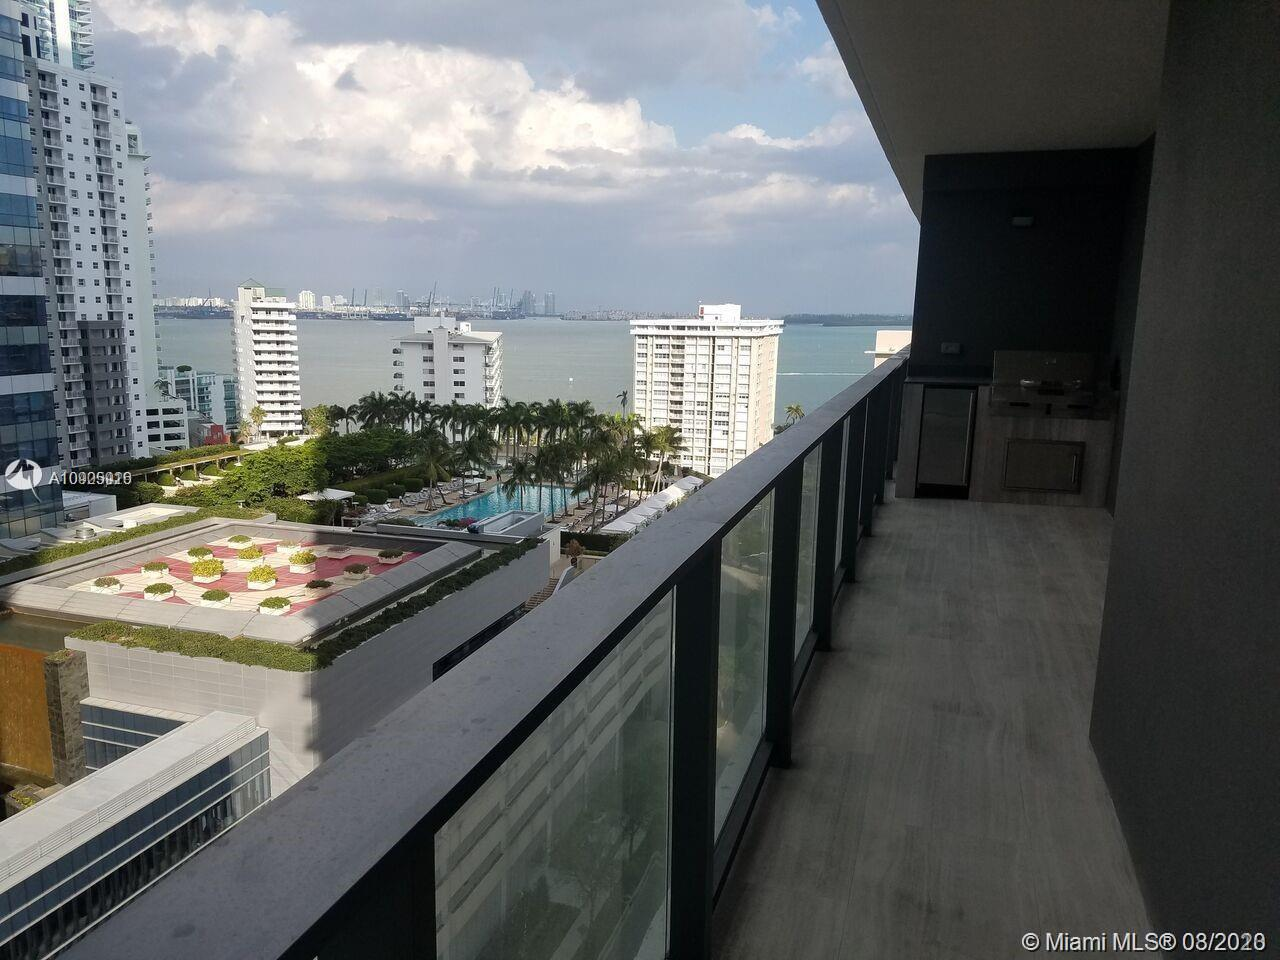 SPECTACULAR LUXURY RESIDENCE AT ECHO BRICKELL FEATURING 1 BED 1 BATH, TOP OF THE LINE APPLIANCES, PORCELAIN FLOORS, BUILT IN CLOSETS, AND MUCH MORE ! NEW SMART BUILDING WITH 5 STAR AMENITIES INCLUDING SPA, FITNESS CENTER, POOL, SAUNA AND MORE! PRICED TO SELL, WONT LAST!!!